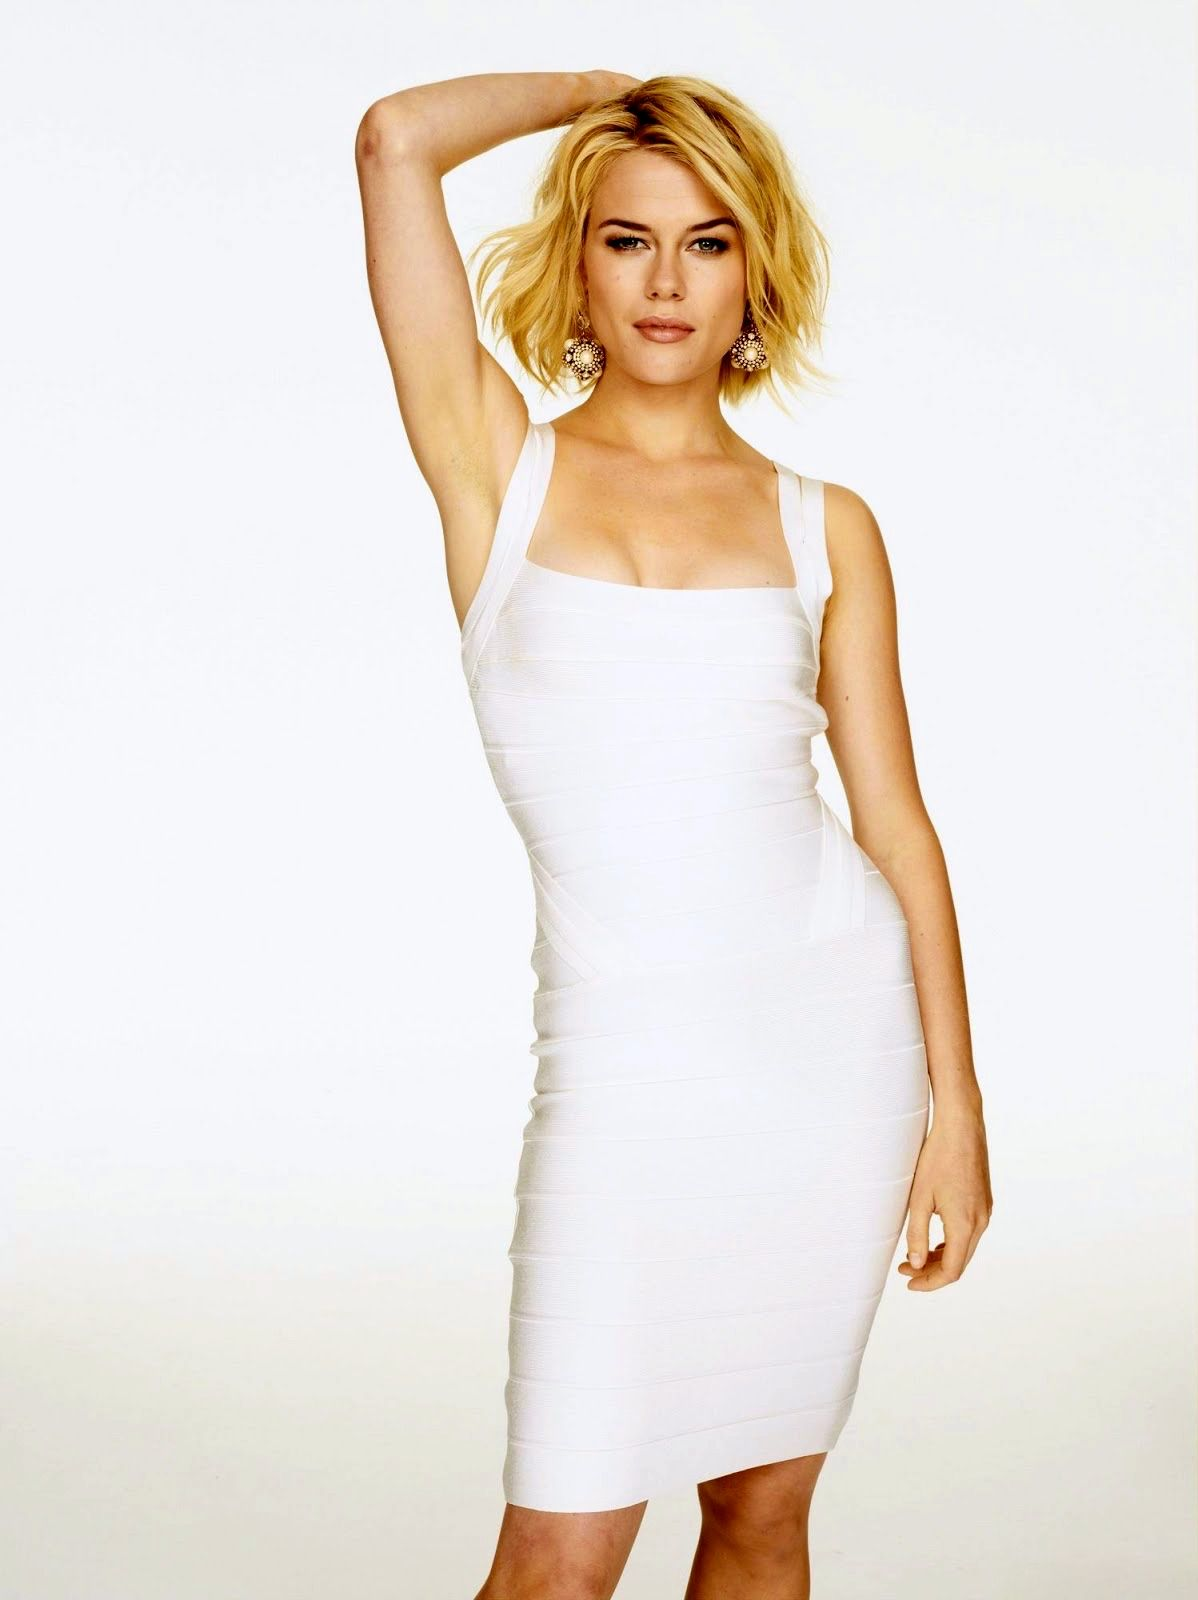 Rachael Taylor in a white body con dress | Celebrities in a Little ...